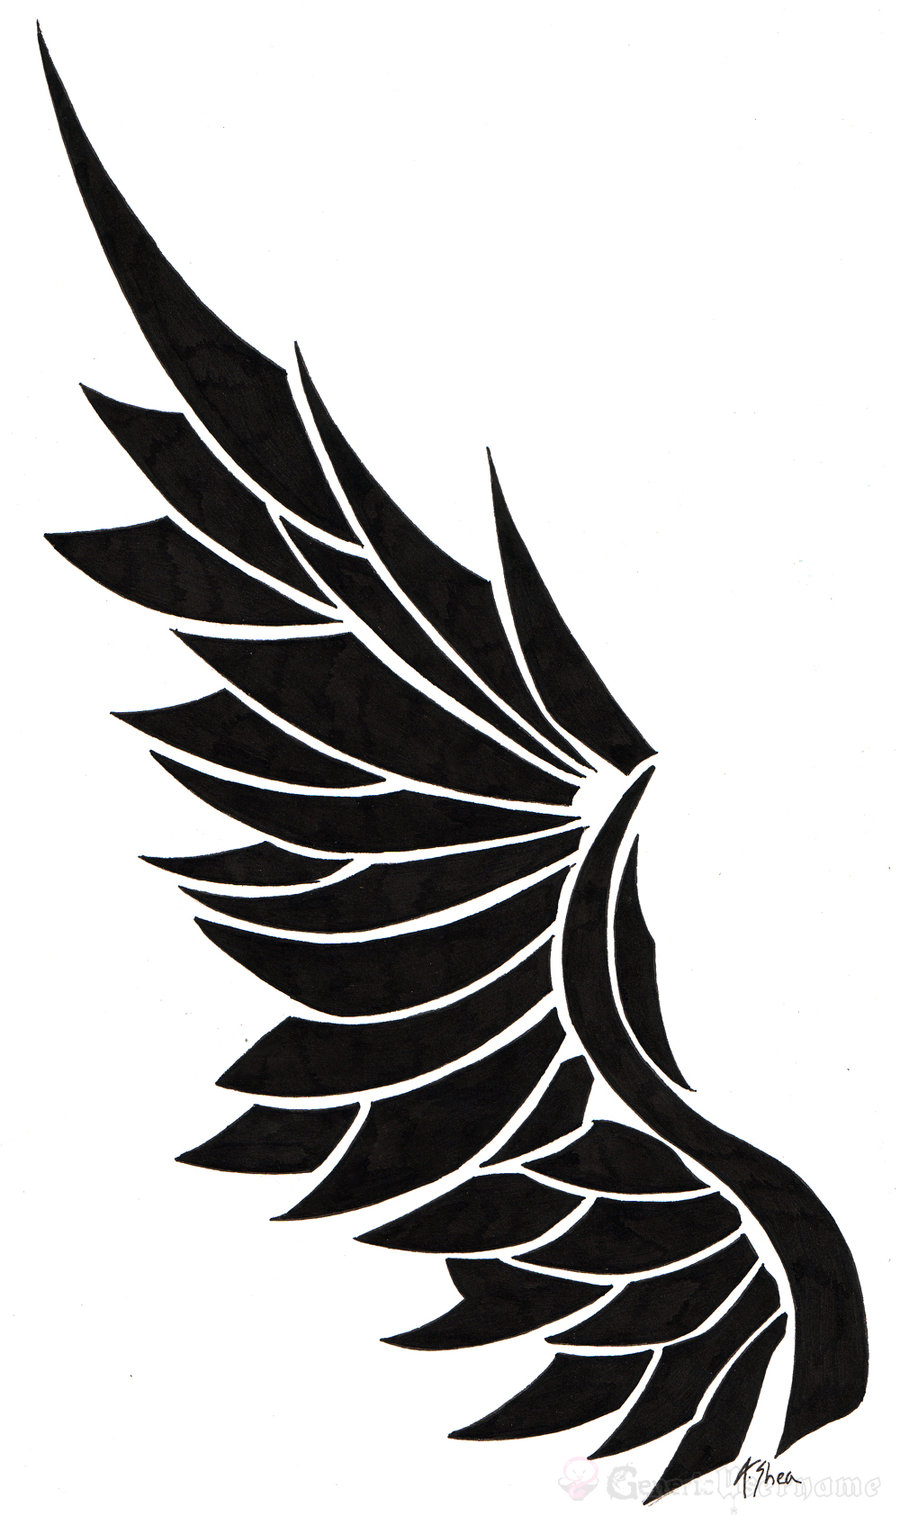 Angel wings with tribal design clipart svg transparent download Free Angel Wings Logo, Download Free Clip Art, Free Clip Art on ... svg transparent download